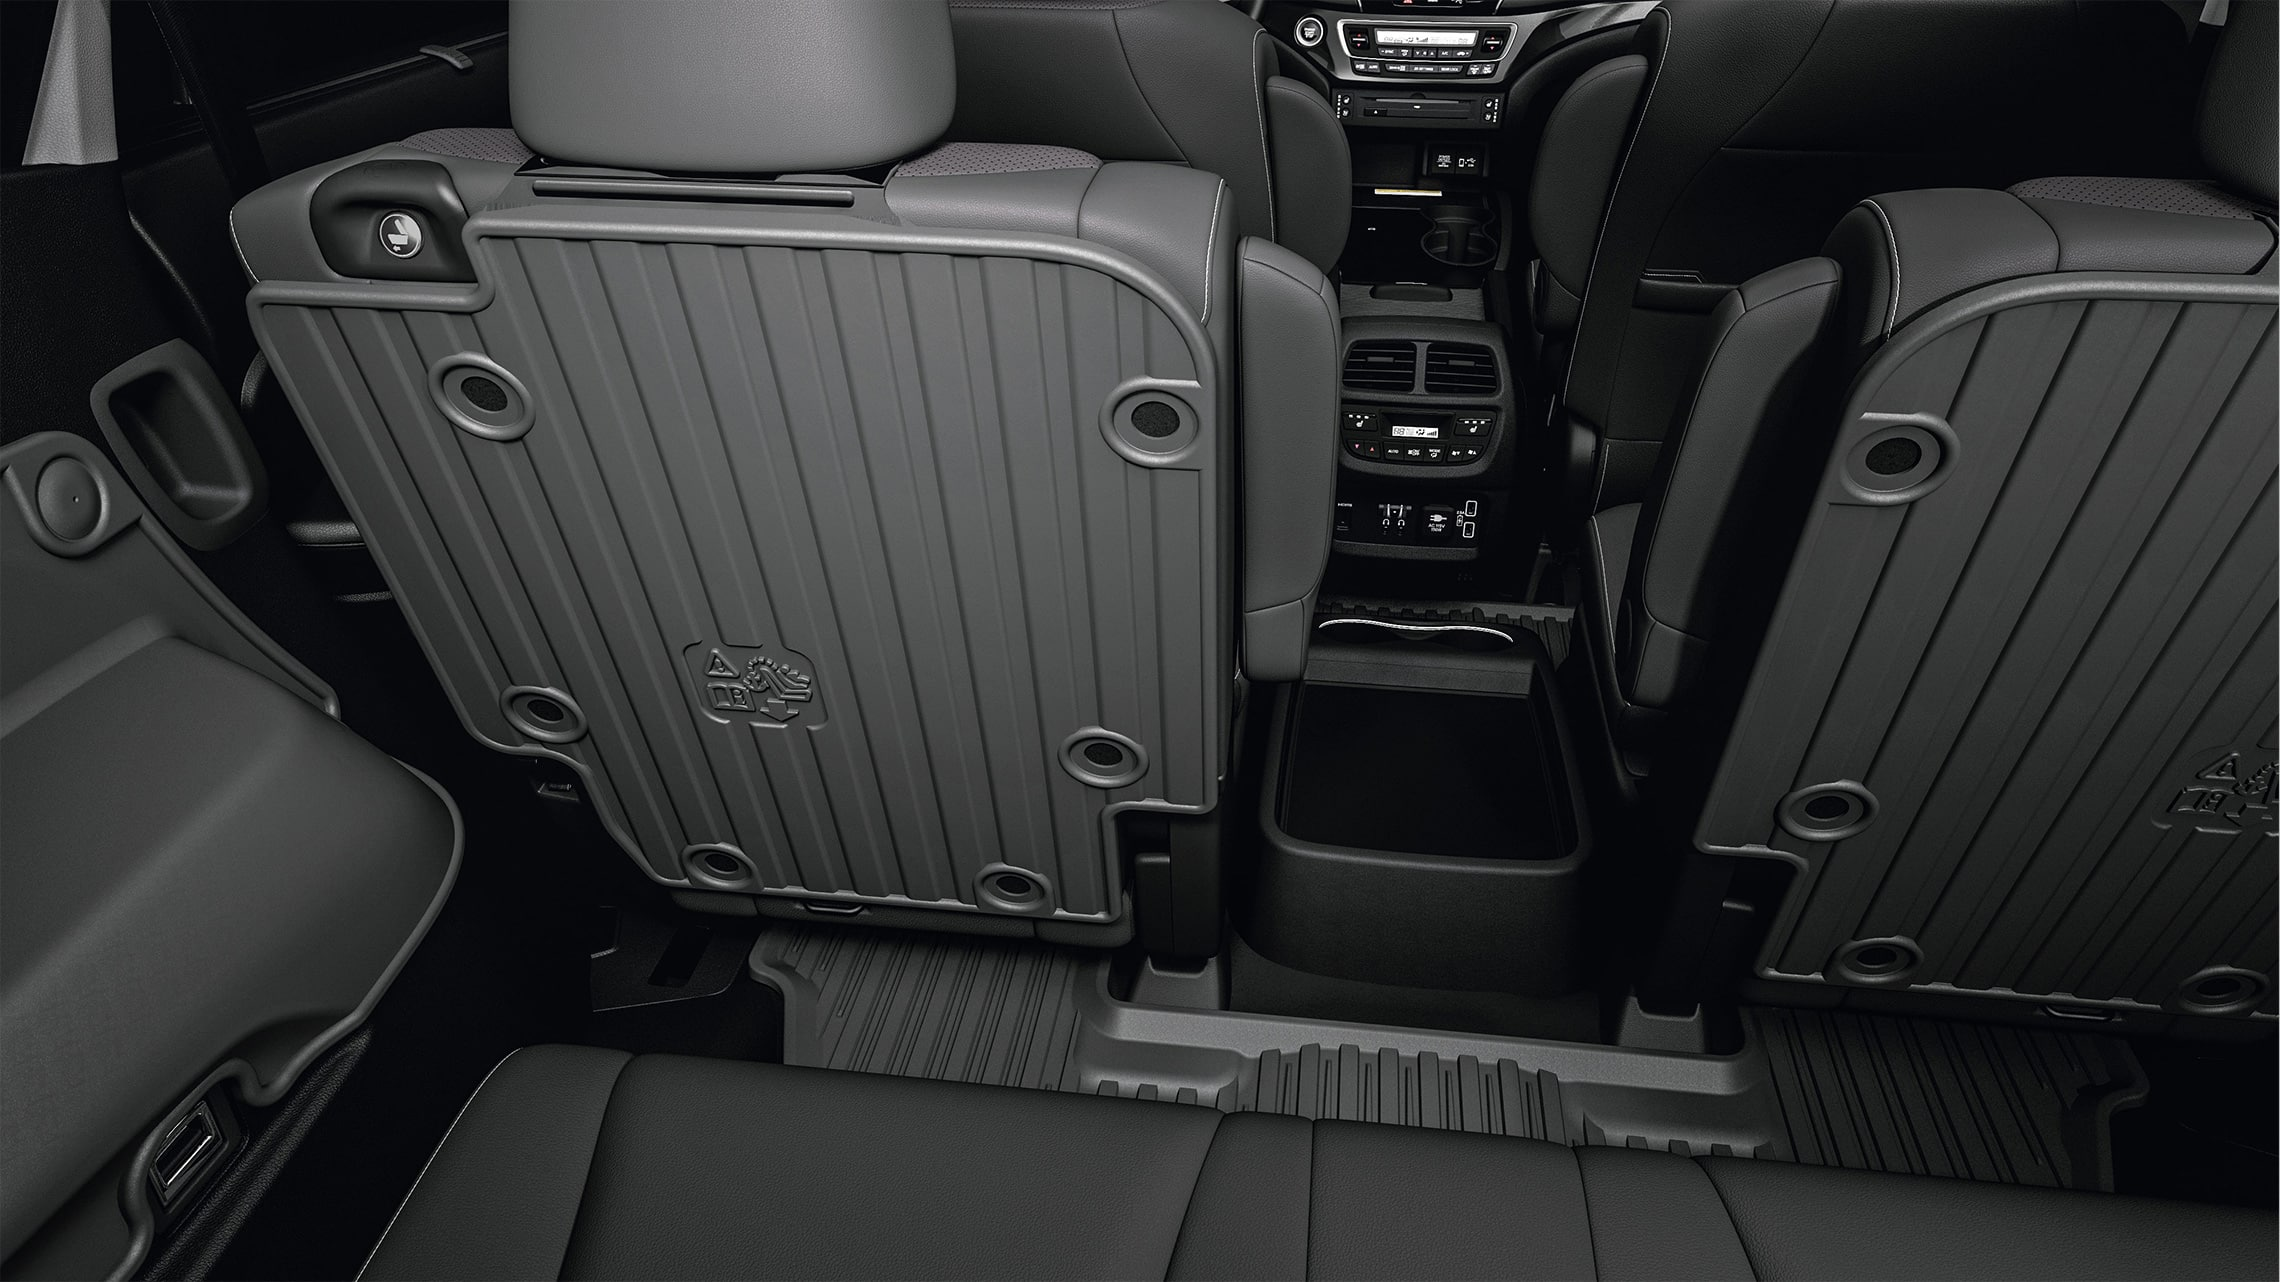 2nd-Row seatback protector detail in 2021 Honda Pilot with Gray Leather interior